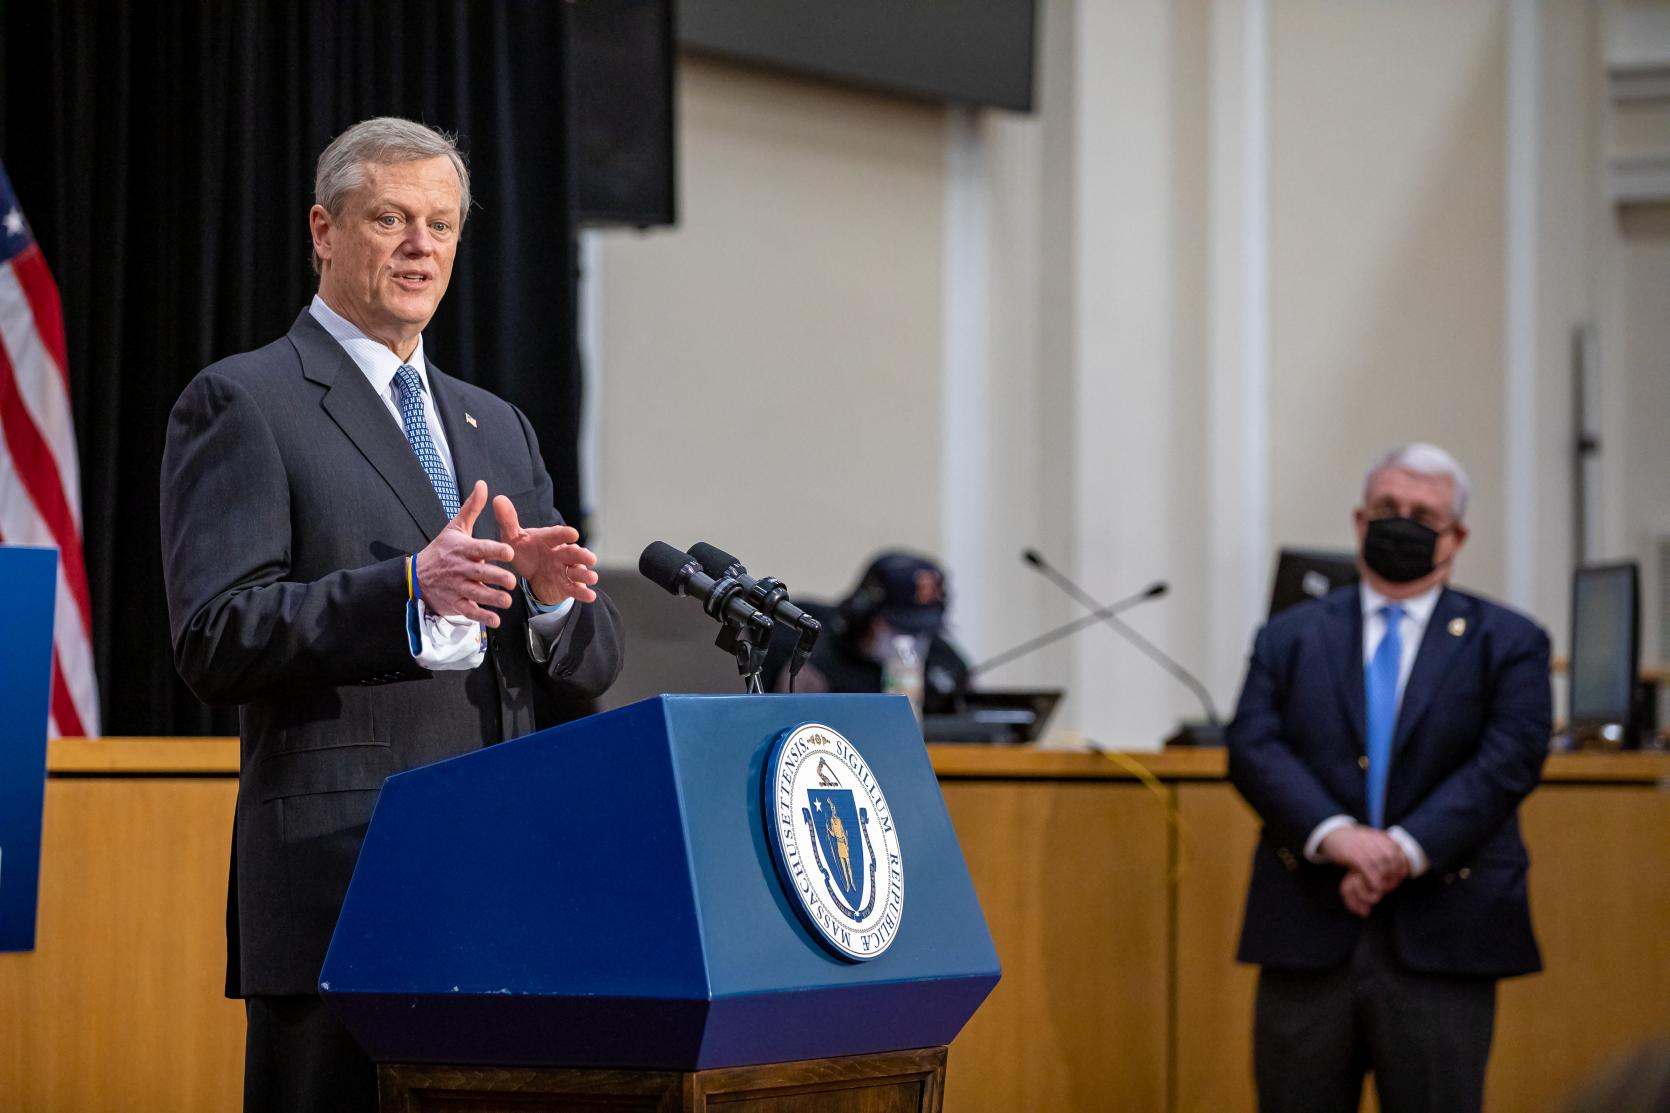 Baker-Polito Administration Files Fiscal Year 2022 Budget Proposal